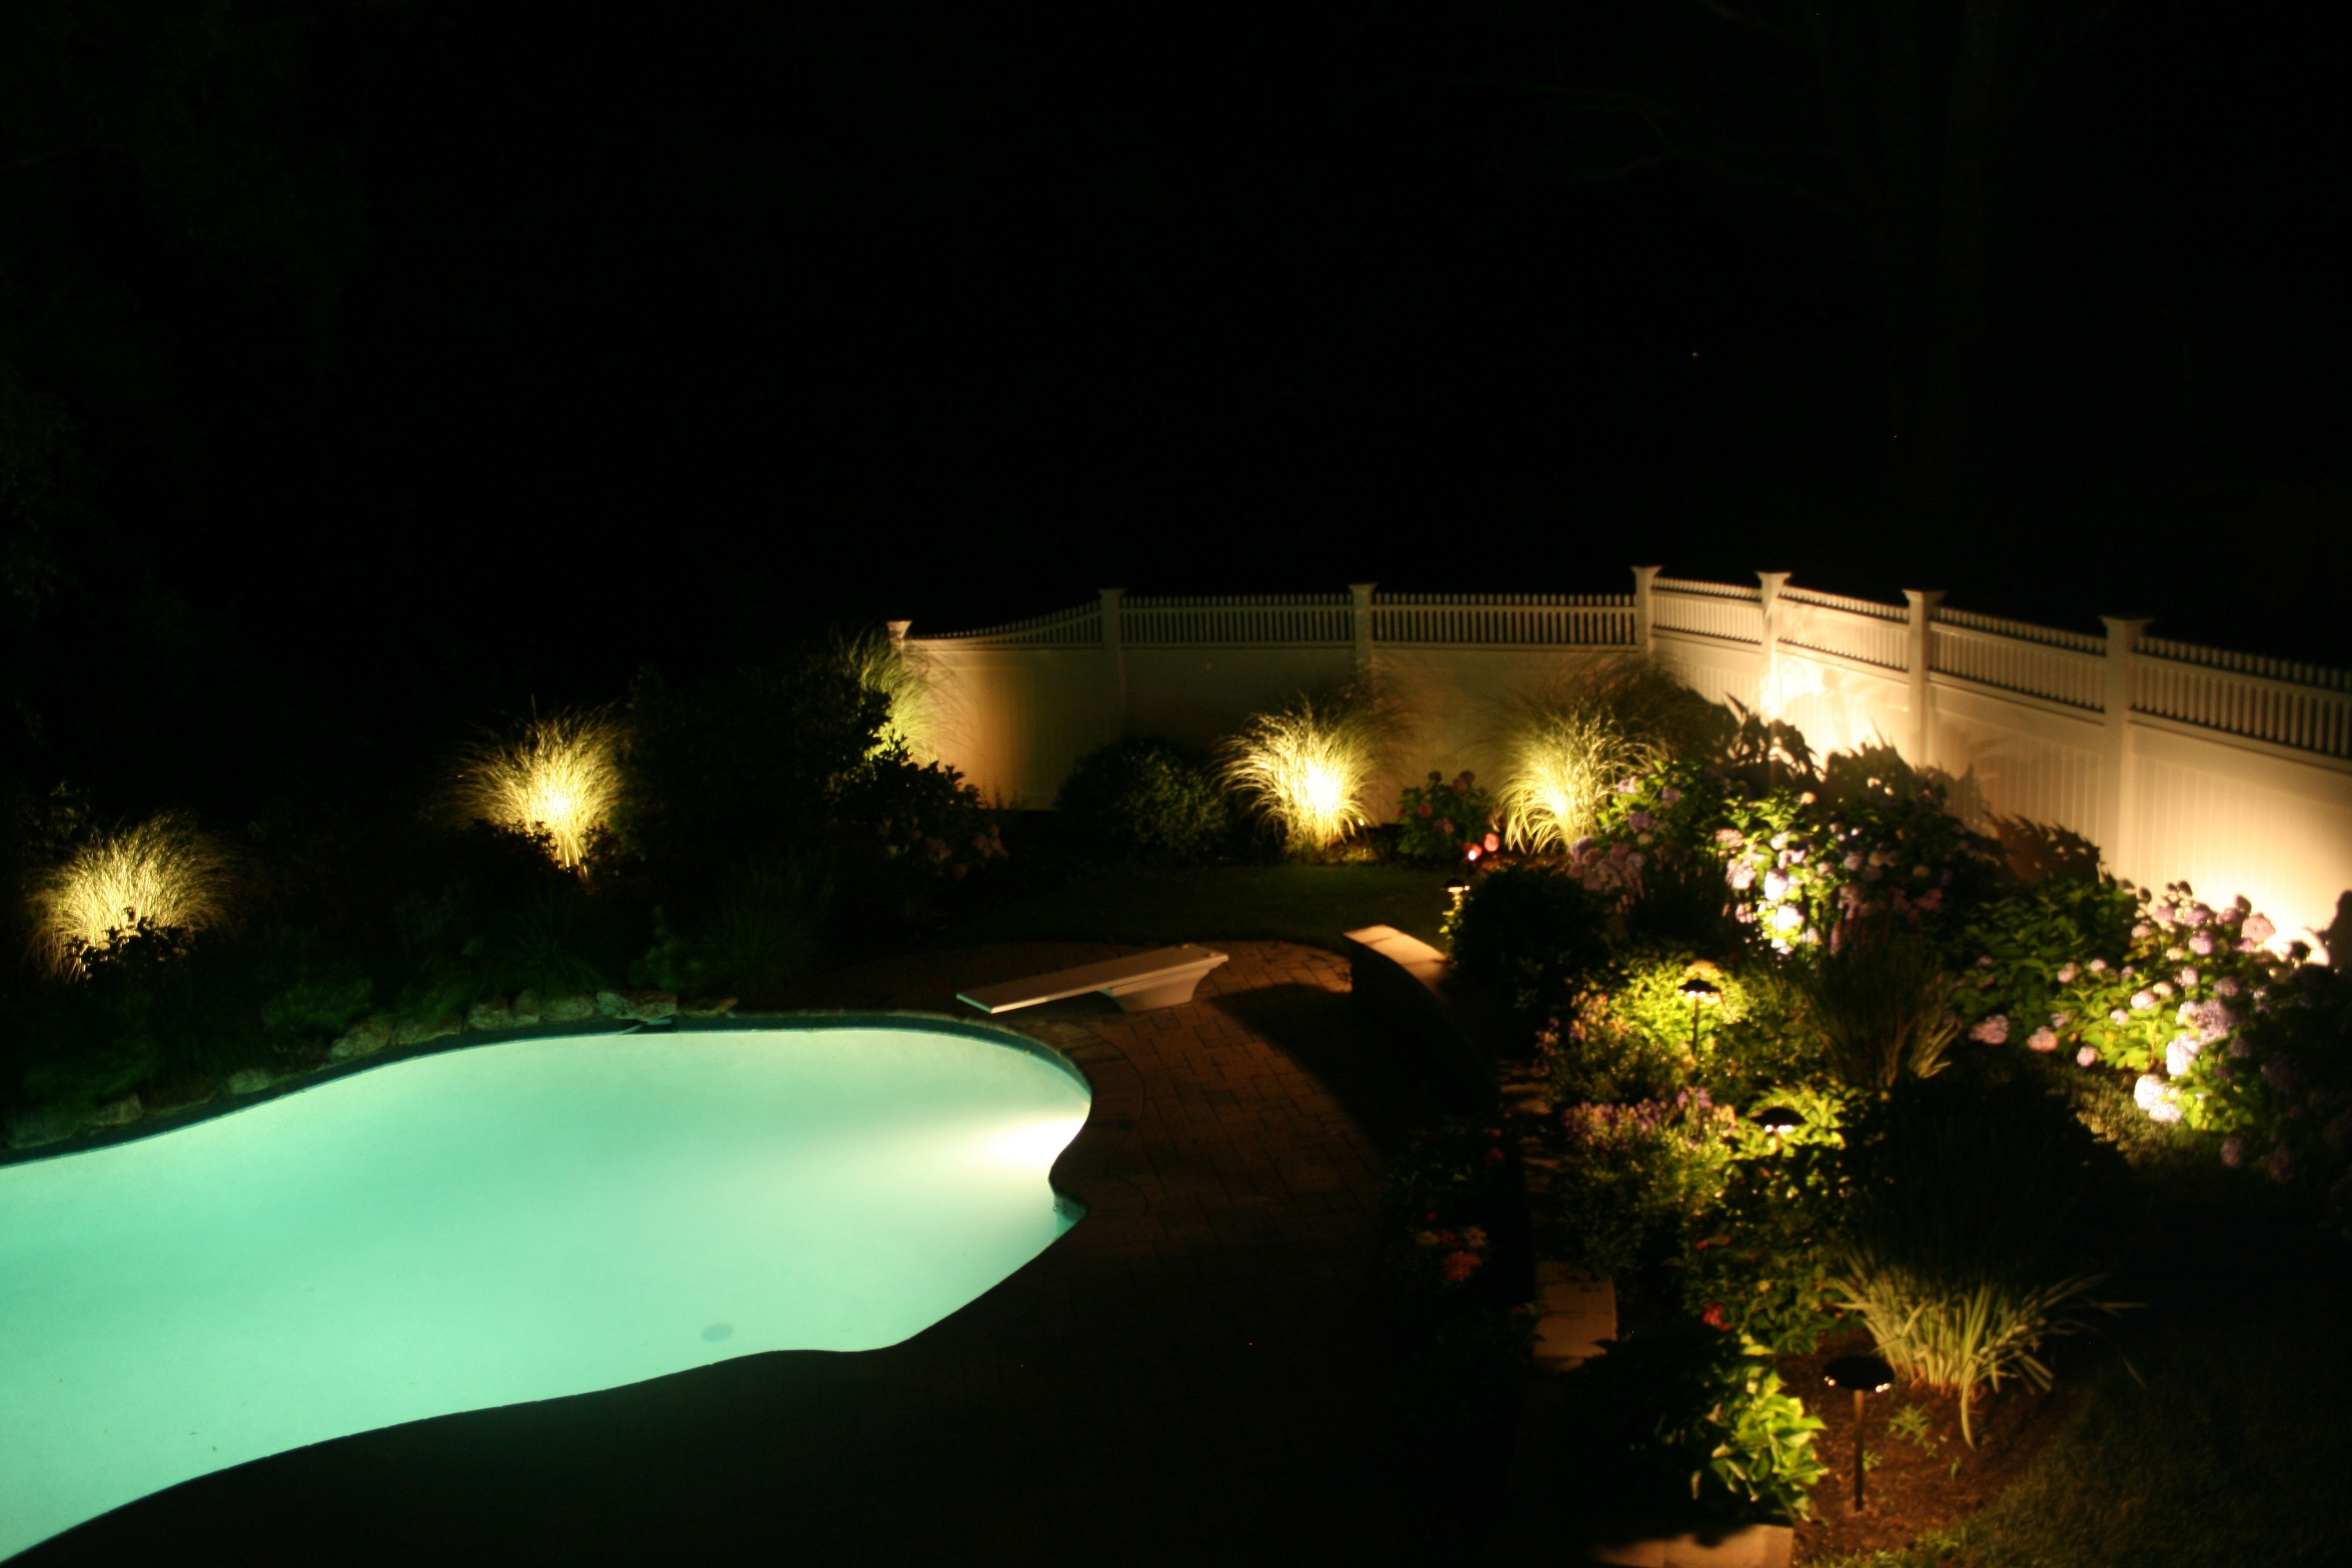 Landscaping With Regard To Outdoor Lanterns For Poolside (View 5 of 20)